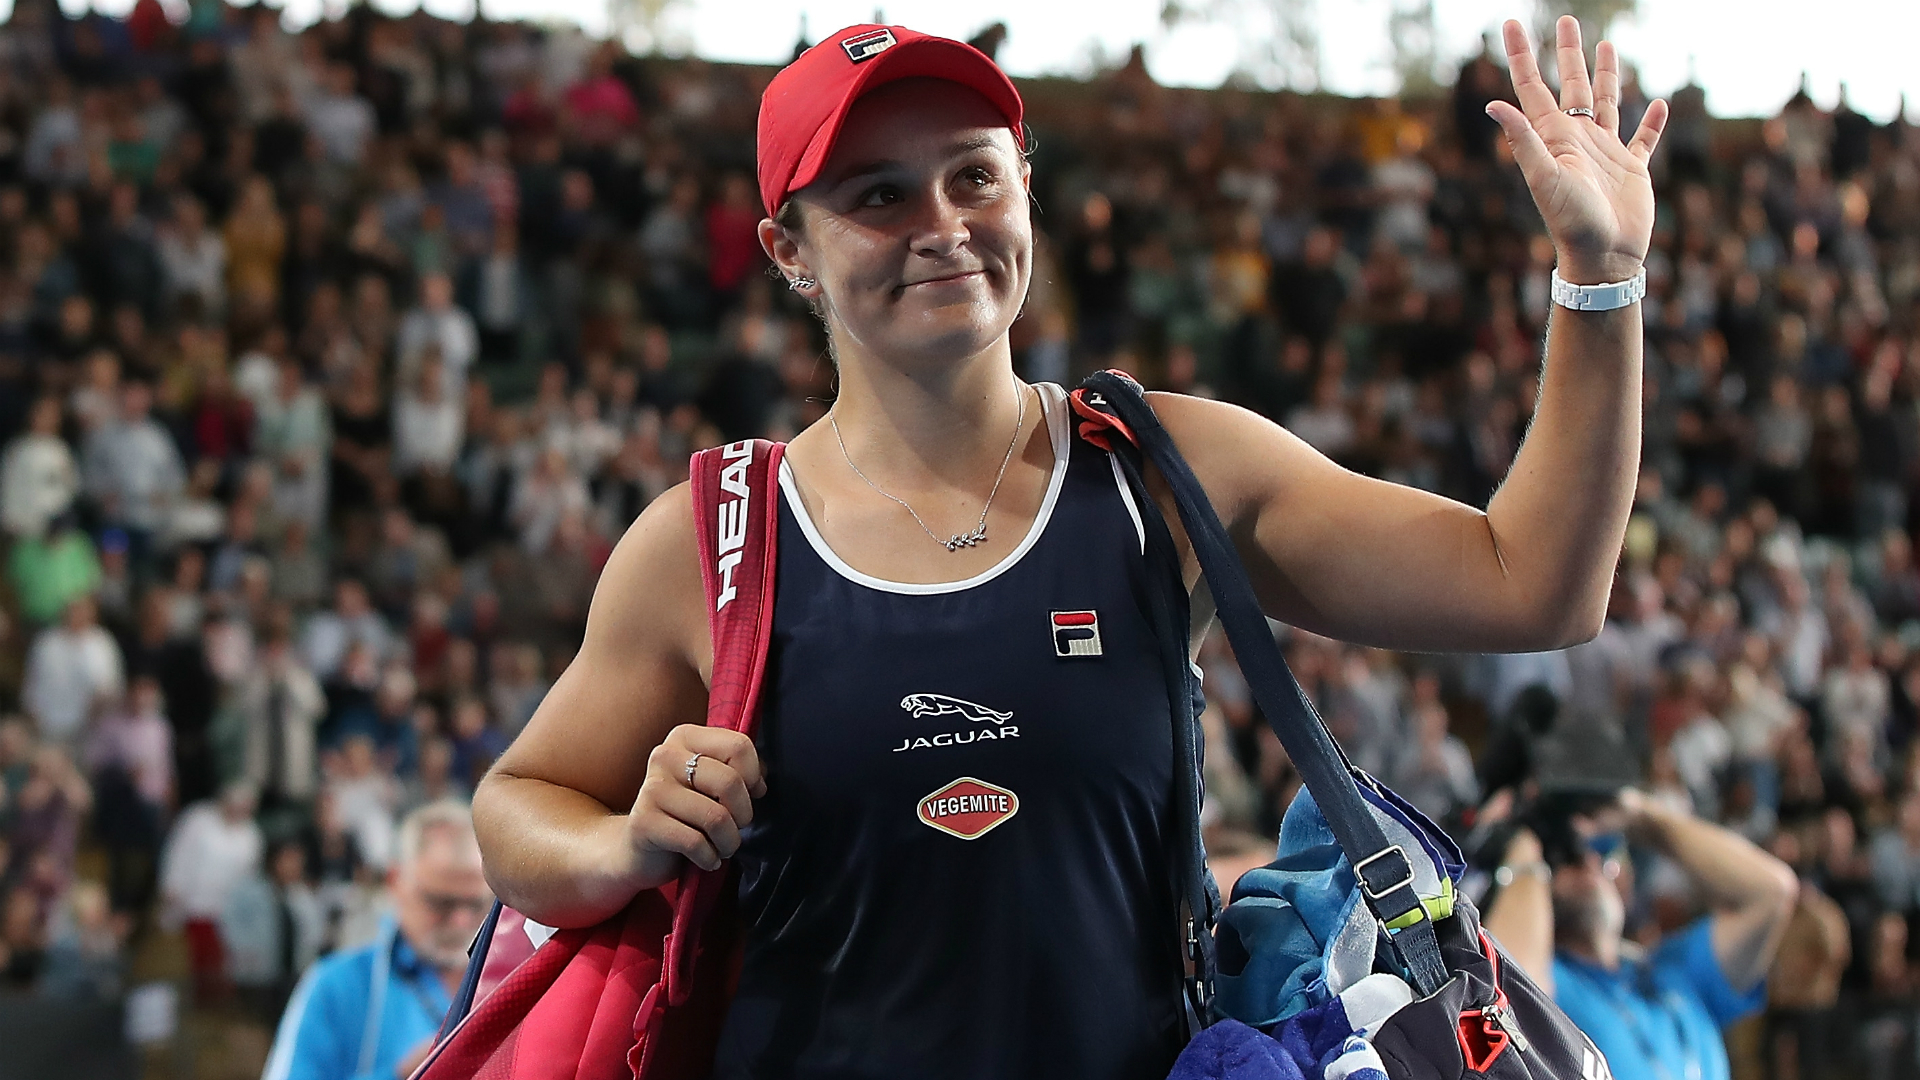 Australian Open 2020: Barty grounded amid heightened expectations in pursuit of home slam